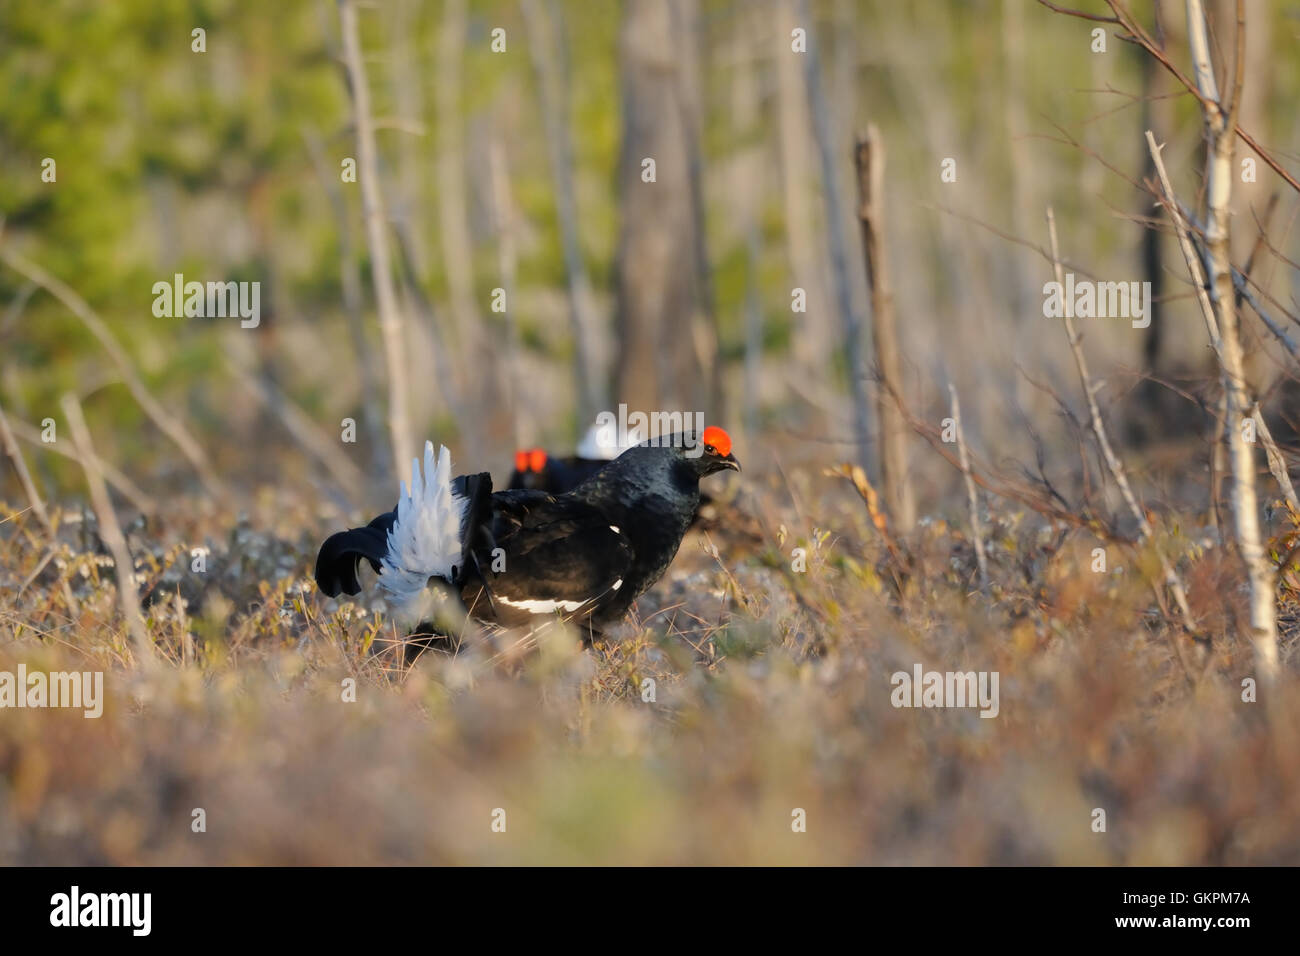 Male Black Grouses (Tetrao tetrix) at swamp courting place early in the morning. - Stock Image